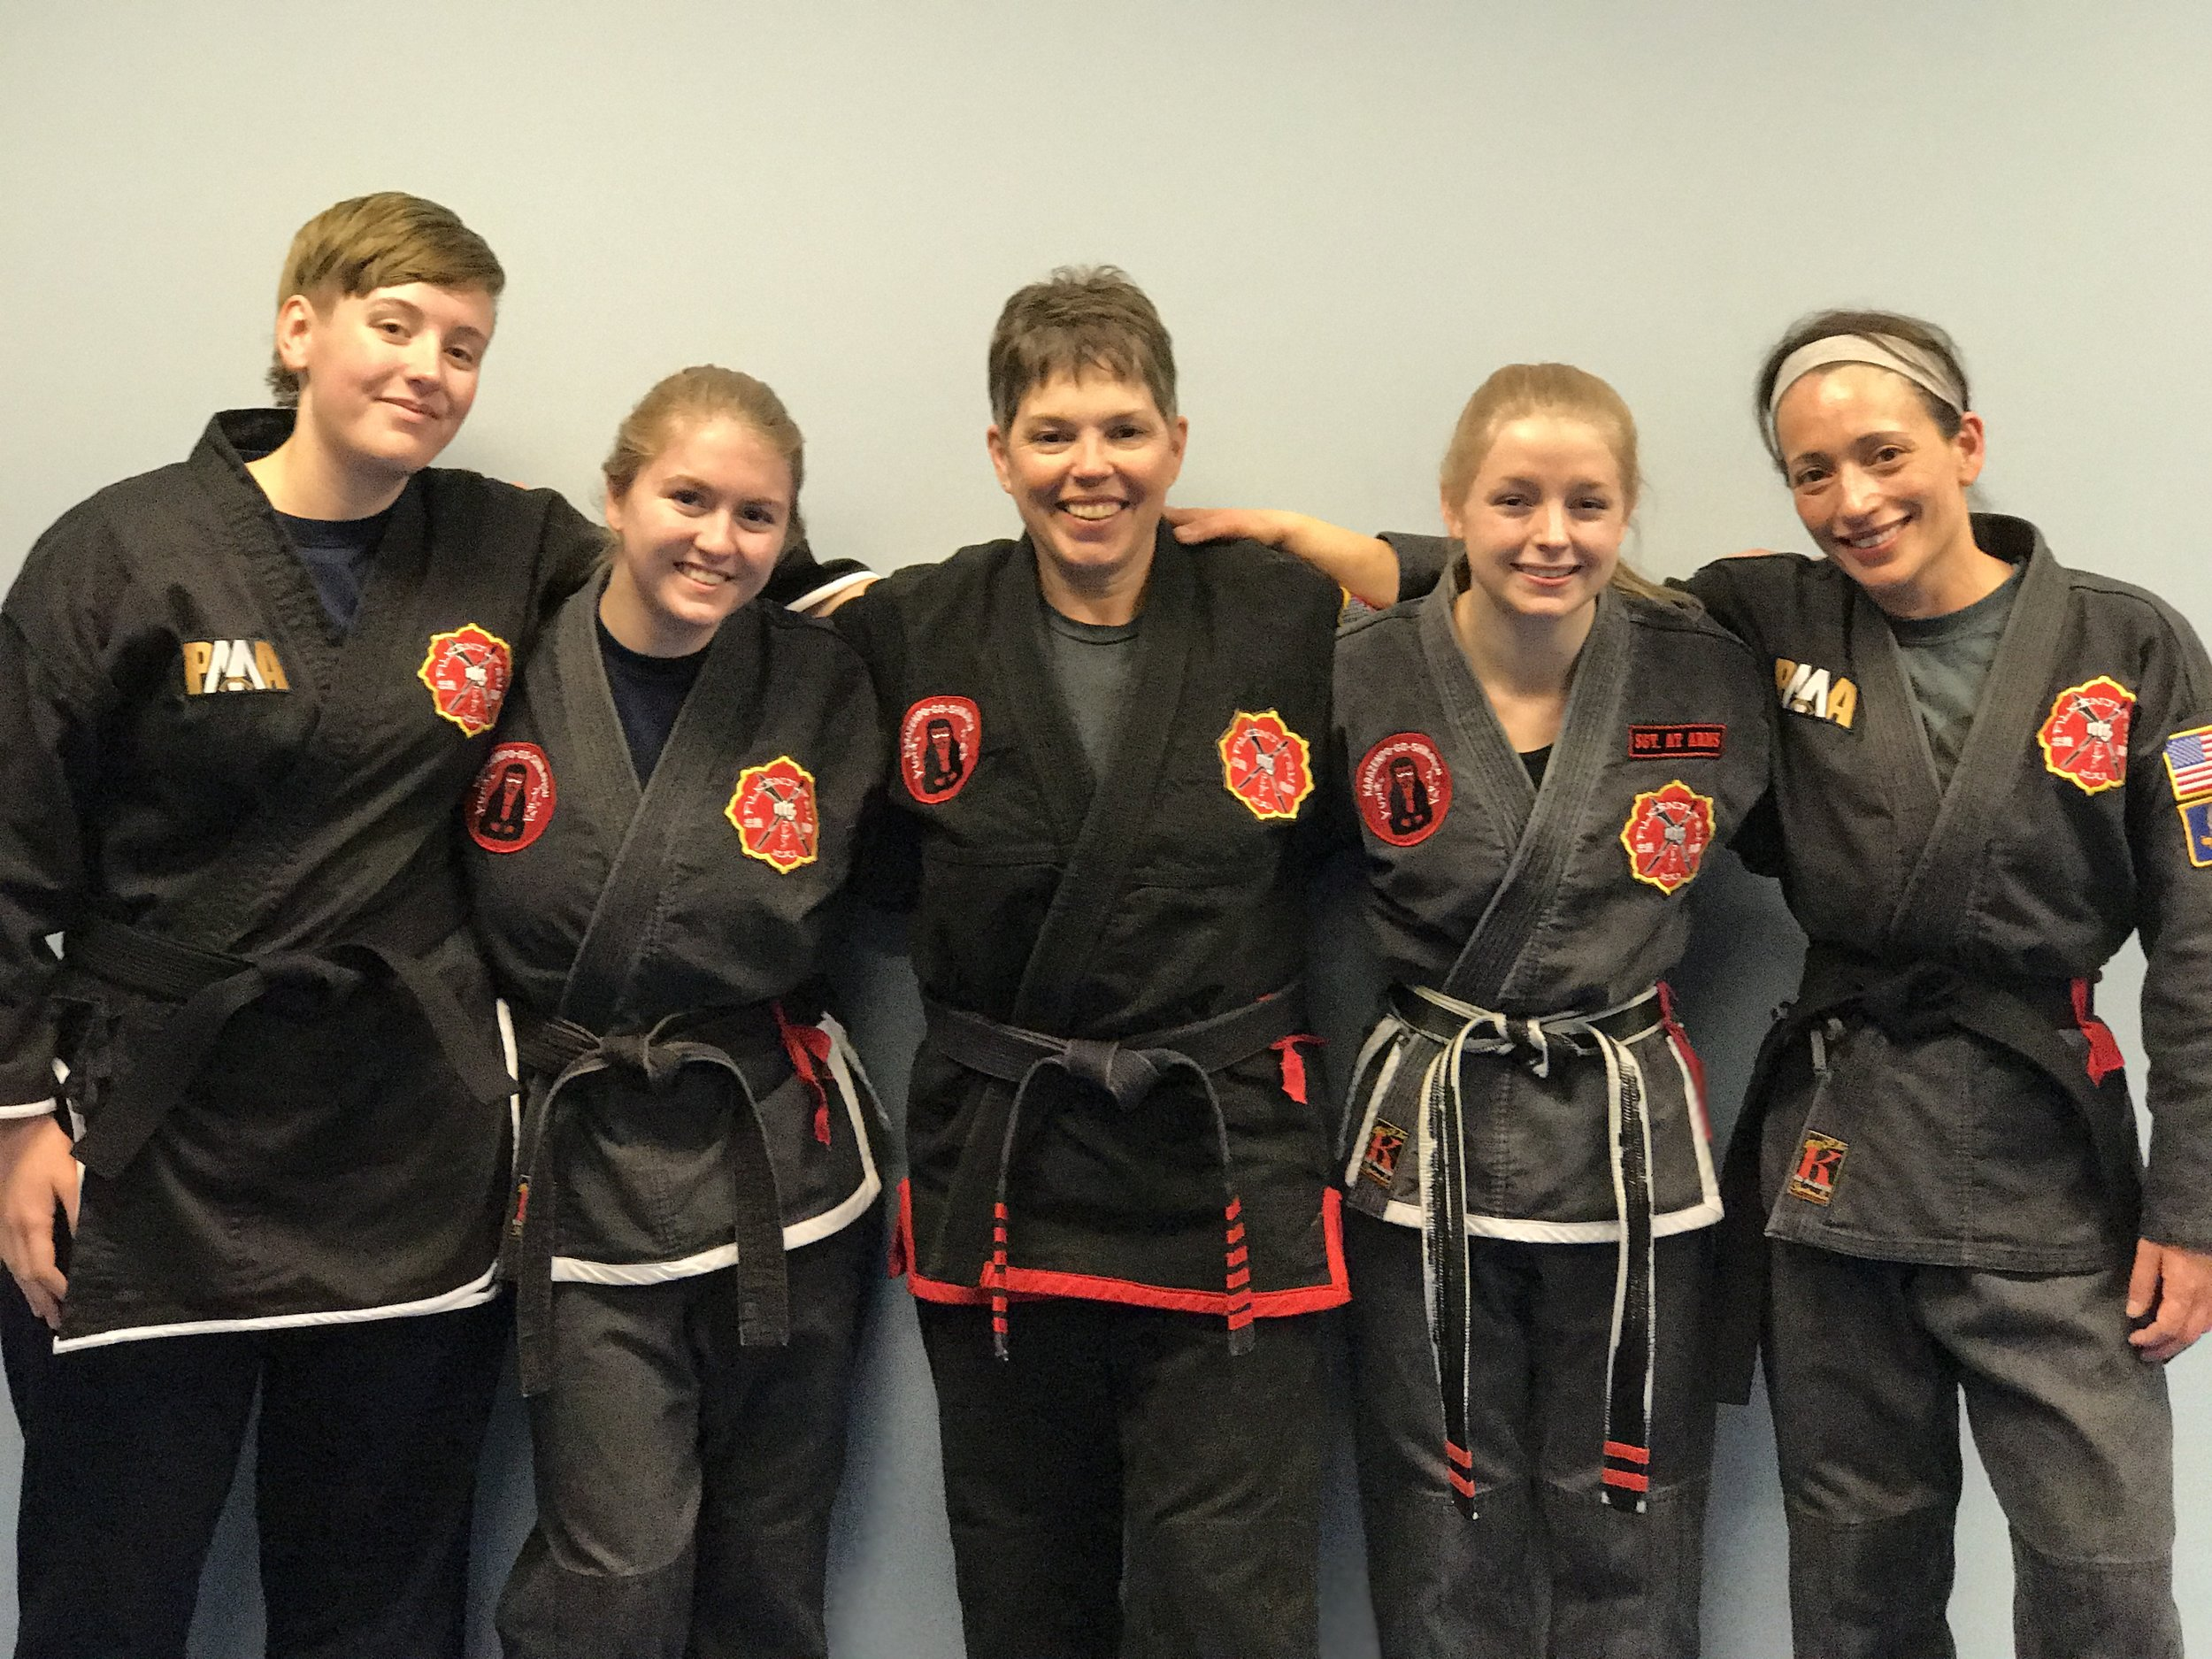 On February 19, 2017, Linda became the 5th female FILKENJUTSU Black Belt. Pictured from left to right: Olivia Cannon, Gracie Hall, Meg Corrigan, Madelyn Fowler, and Linda Davis.